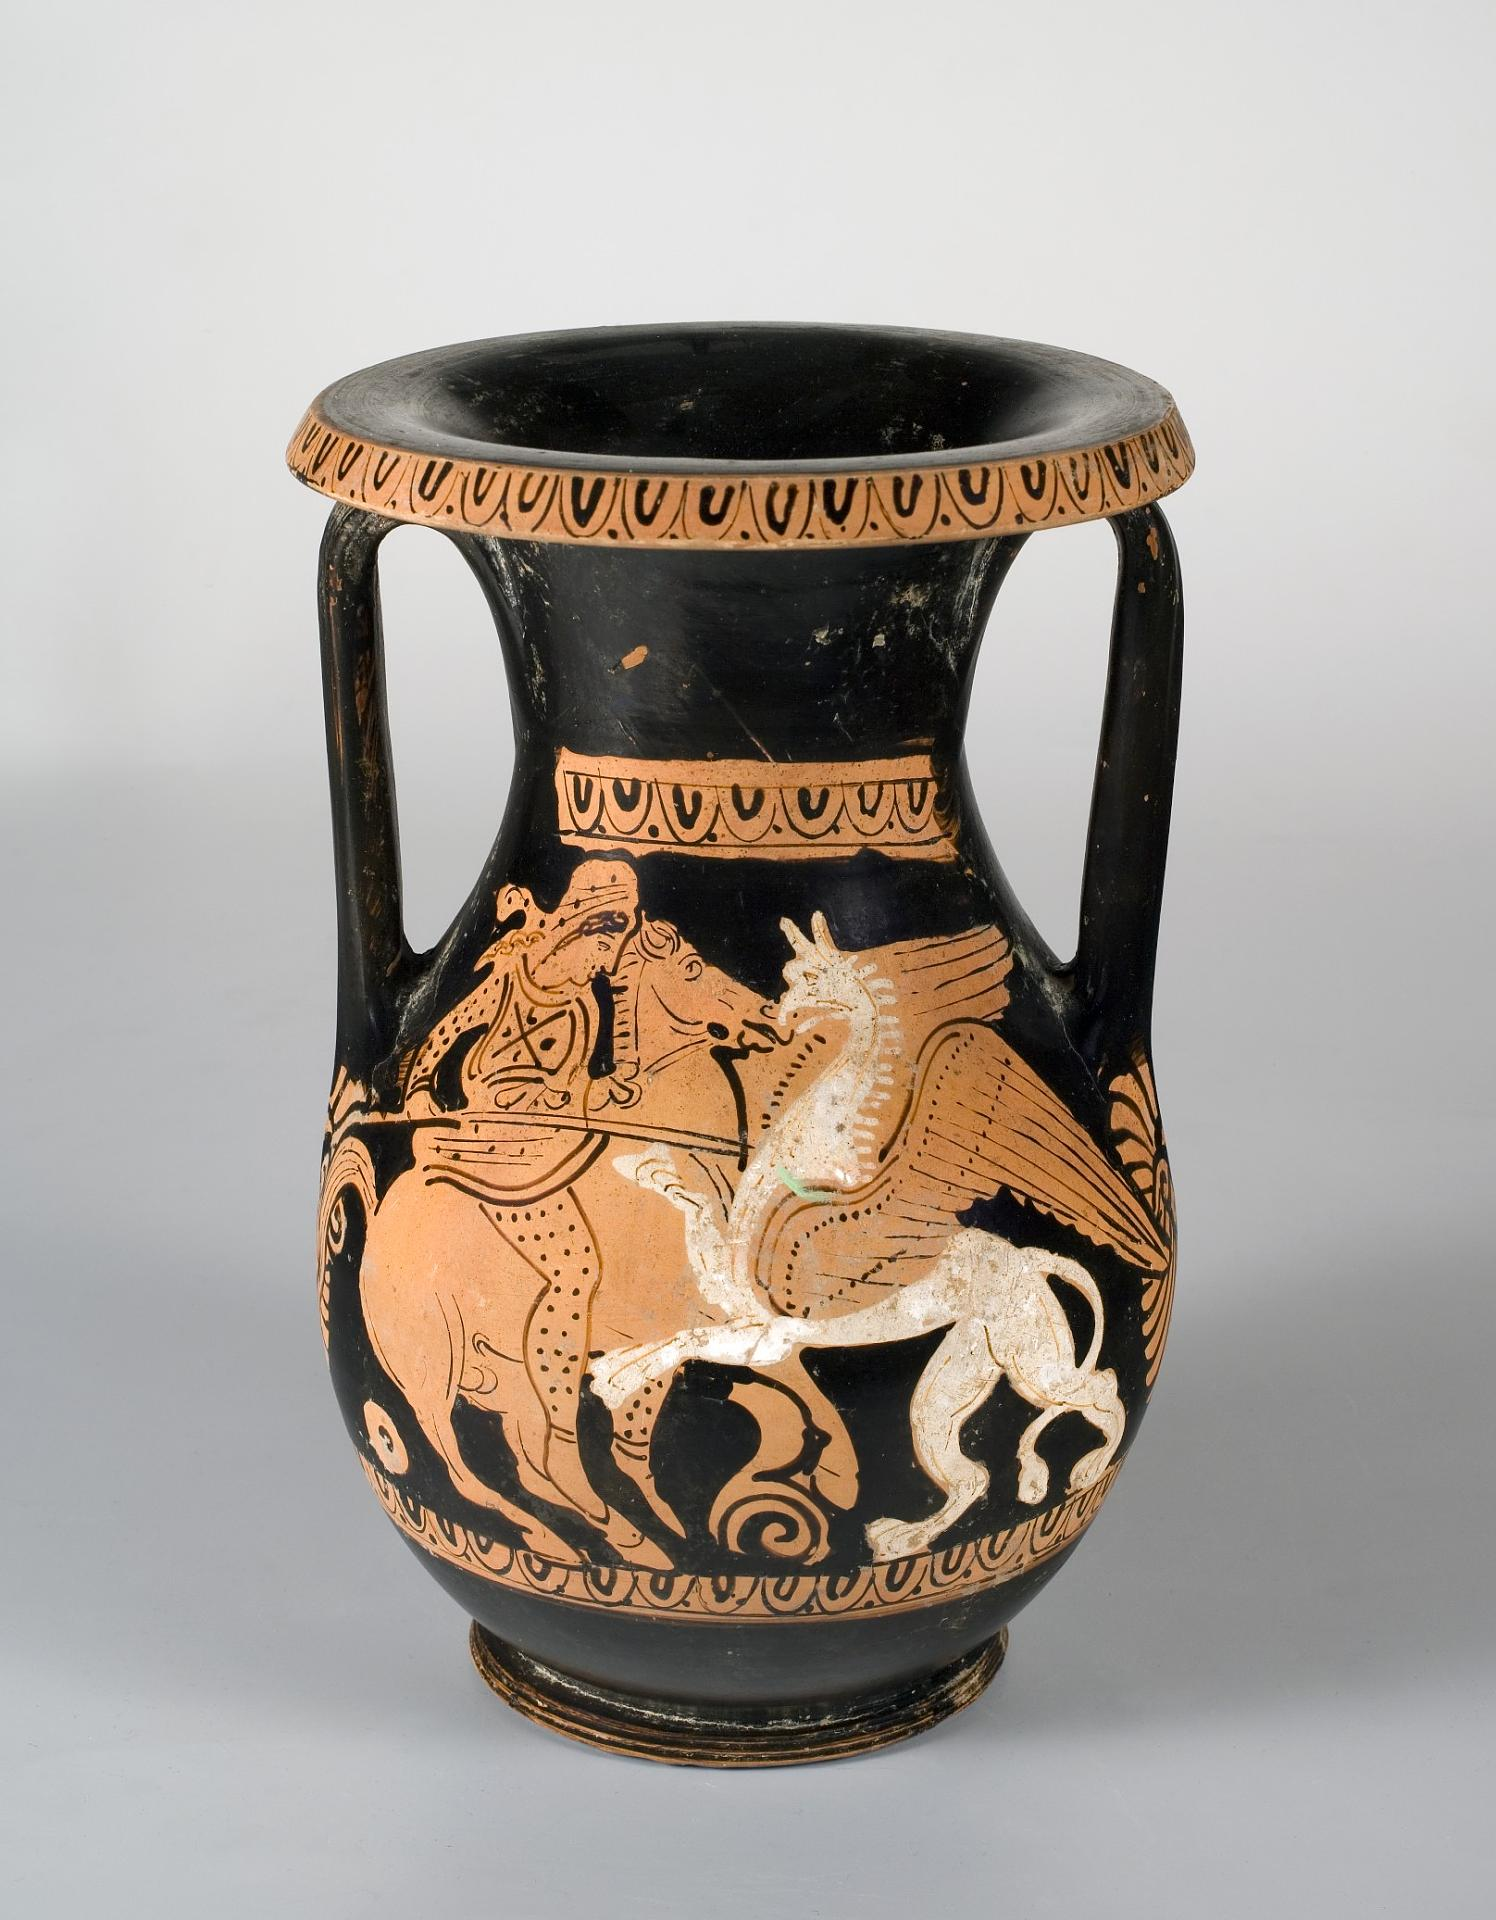 Red-figured Pelike Showing a Fight of an Amazon on Horseback with a Gryphon, Third quarter of the 4th century BC, Attica